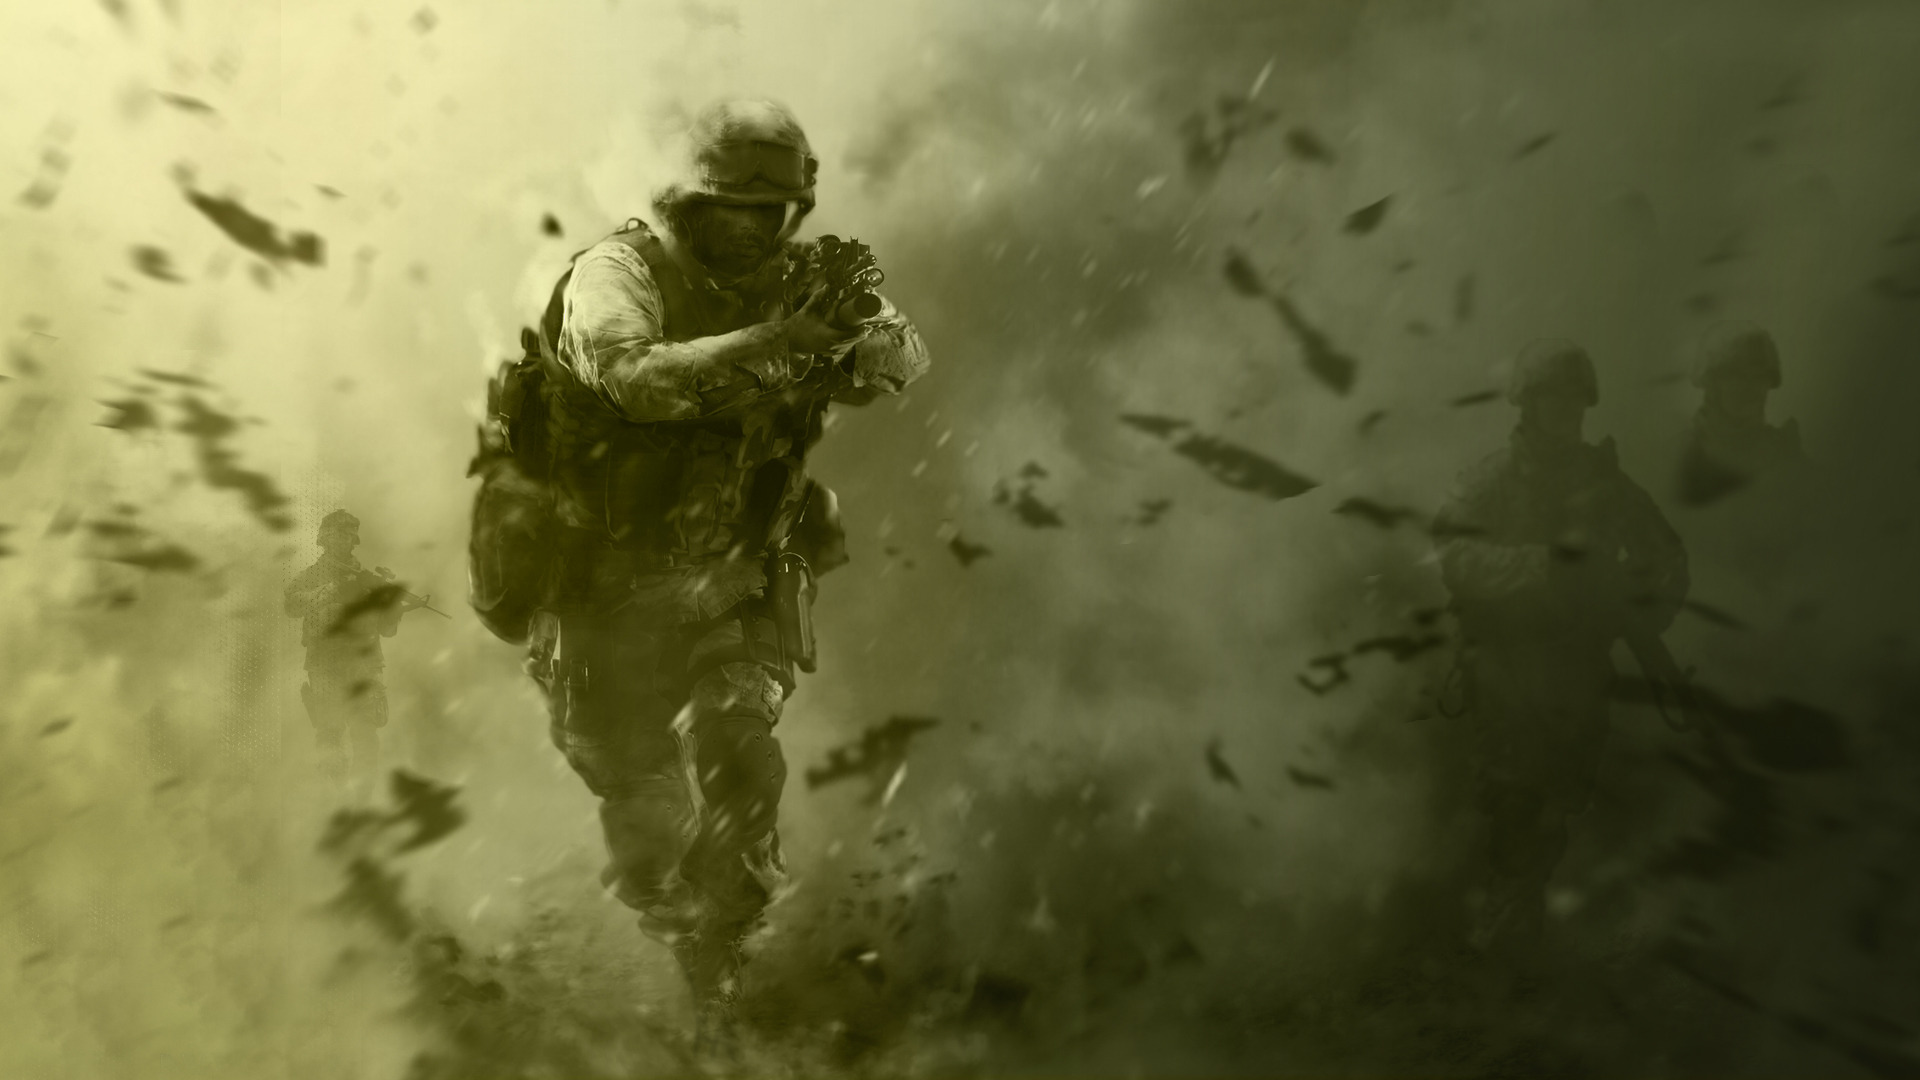 Call Of Duty Modern Warfare Remastered To Come With Campaign And